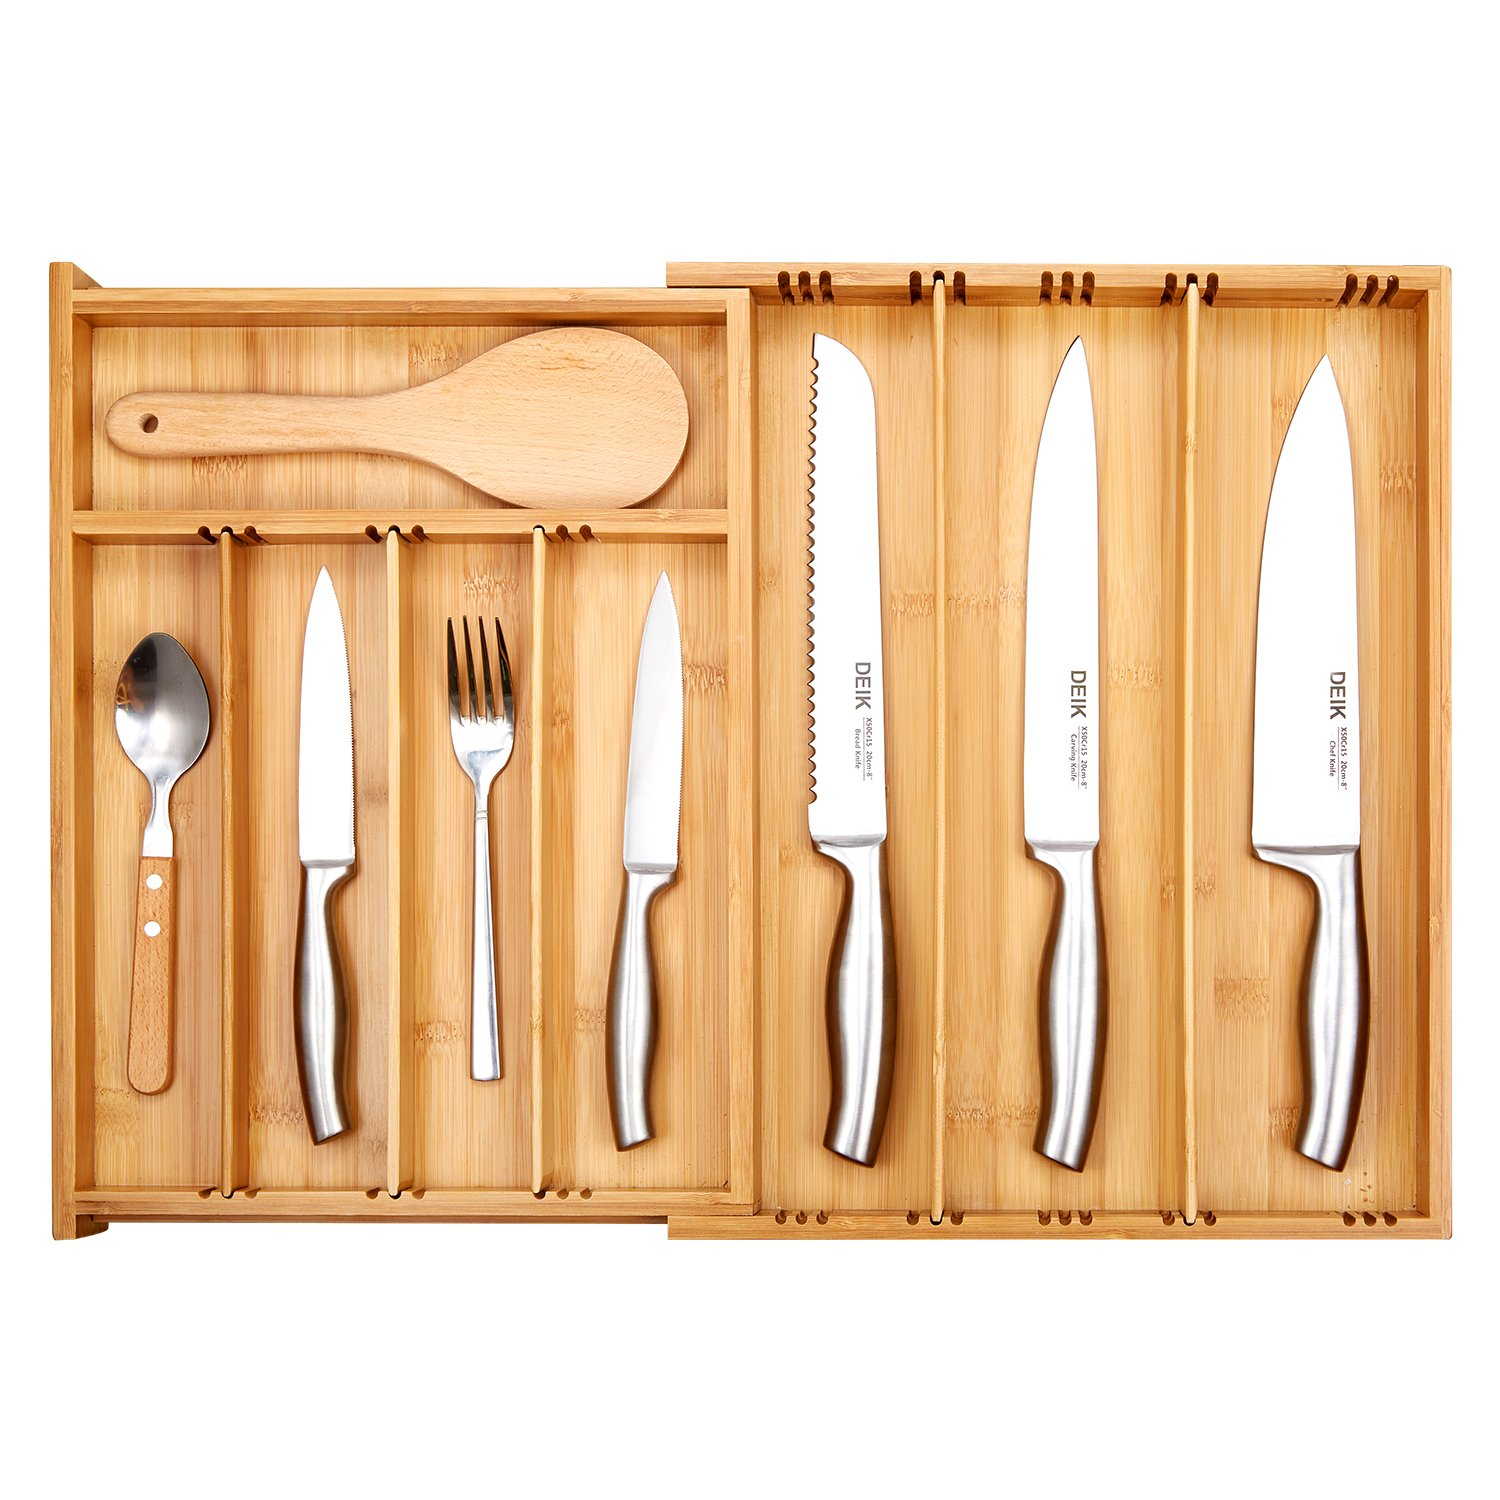 strt lid mple with silverware walmart organizer target wood drawer sert flatware amazon cusm narrow